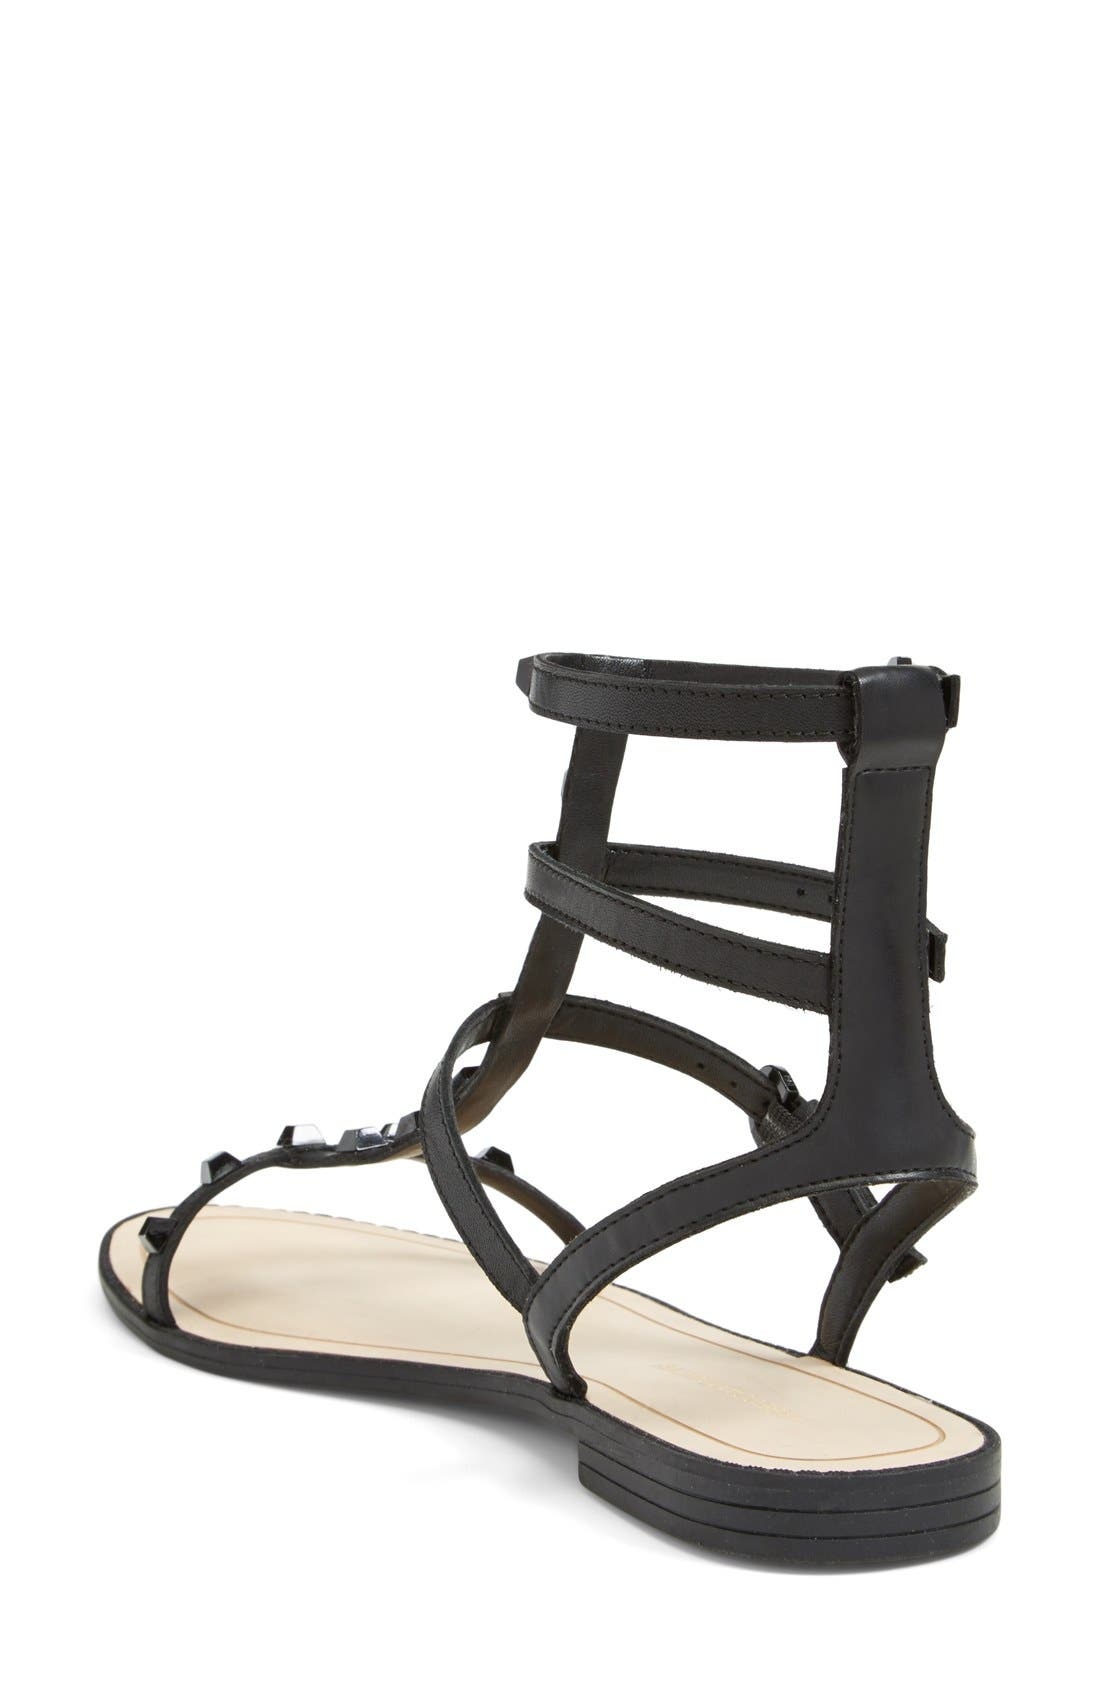 'Georgina' Studded Leather Sandal,                             Alternate thumbnail 2, color,                             Black